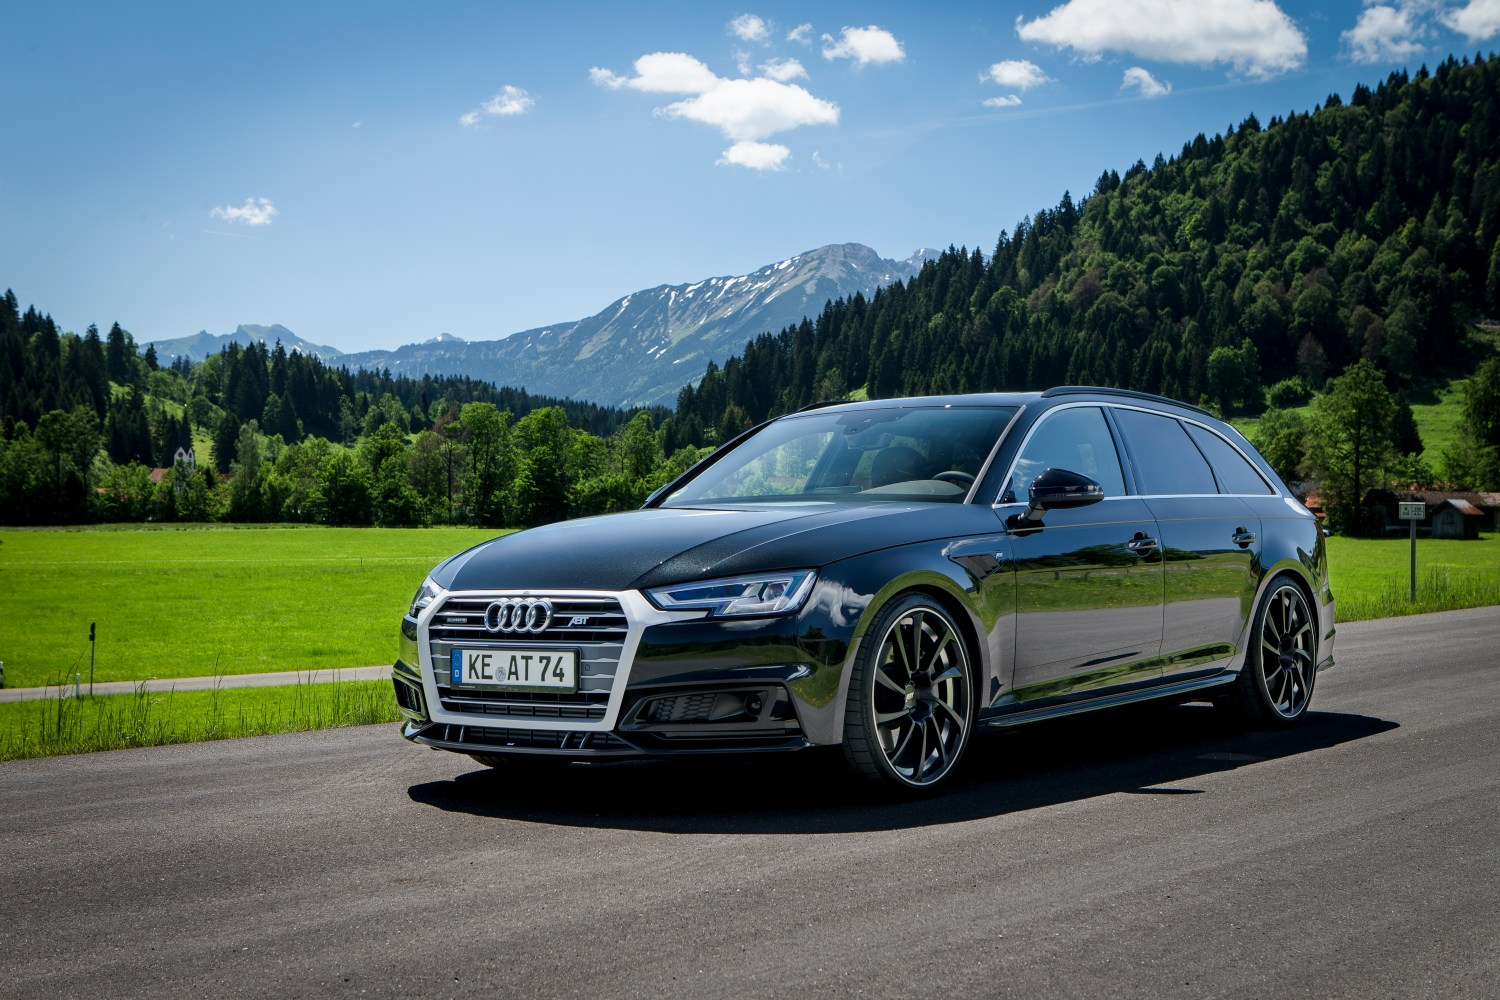 ABT A4 Avant 8W00 Tuning 2016 005 ≫ Tuning【 Rieger Oficial ®】